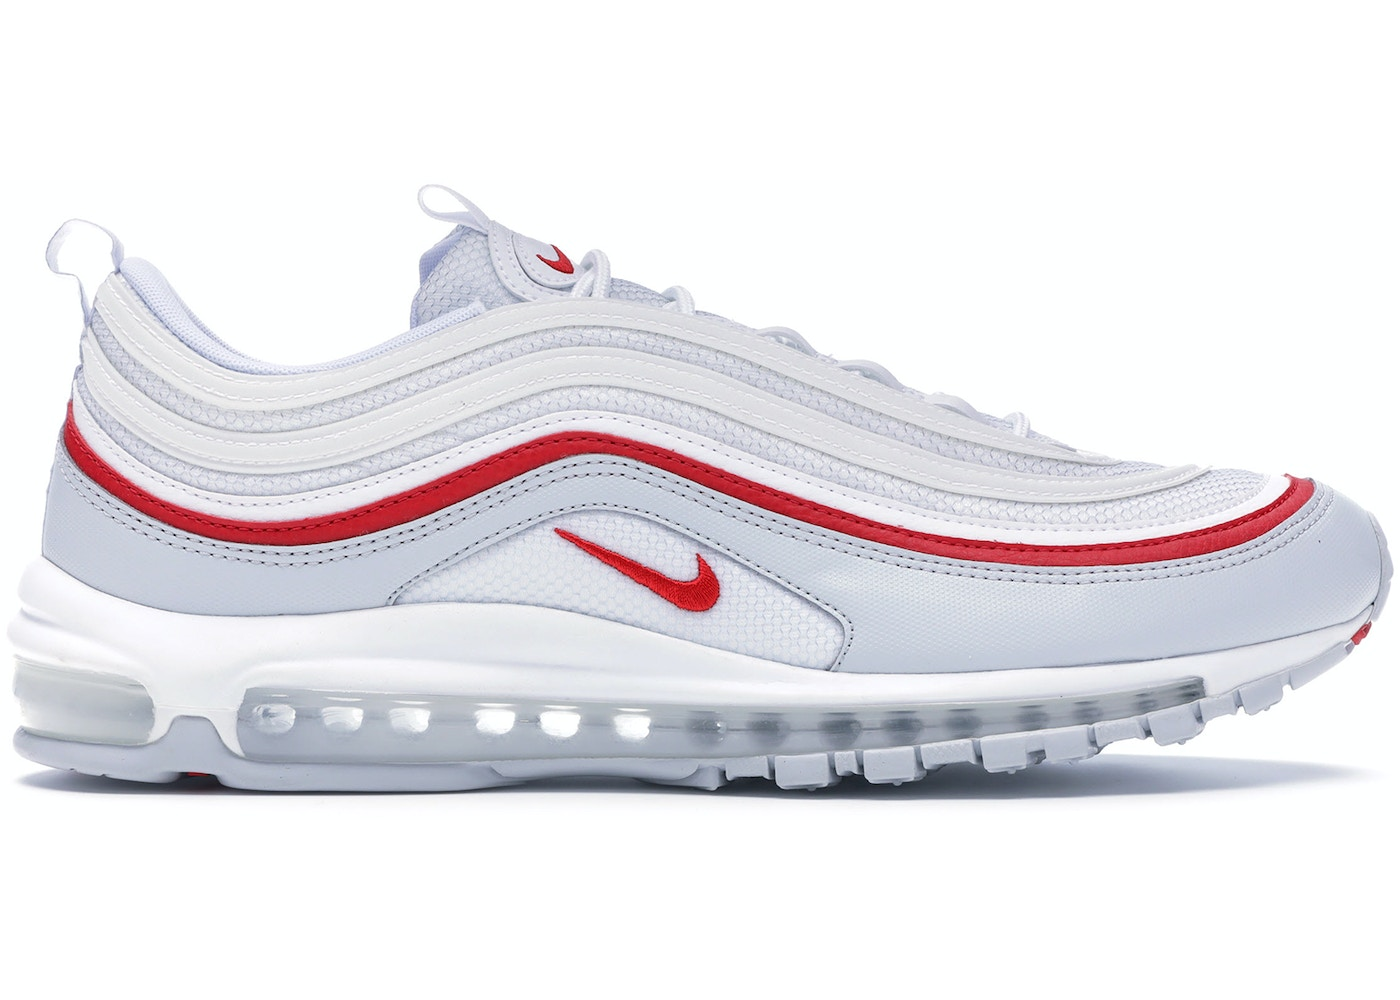 new products 9af2d 998f7 Air Max 97 White Pure Platinum University Red - AR5531-002